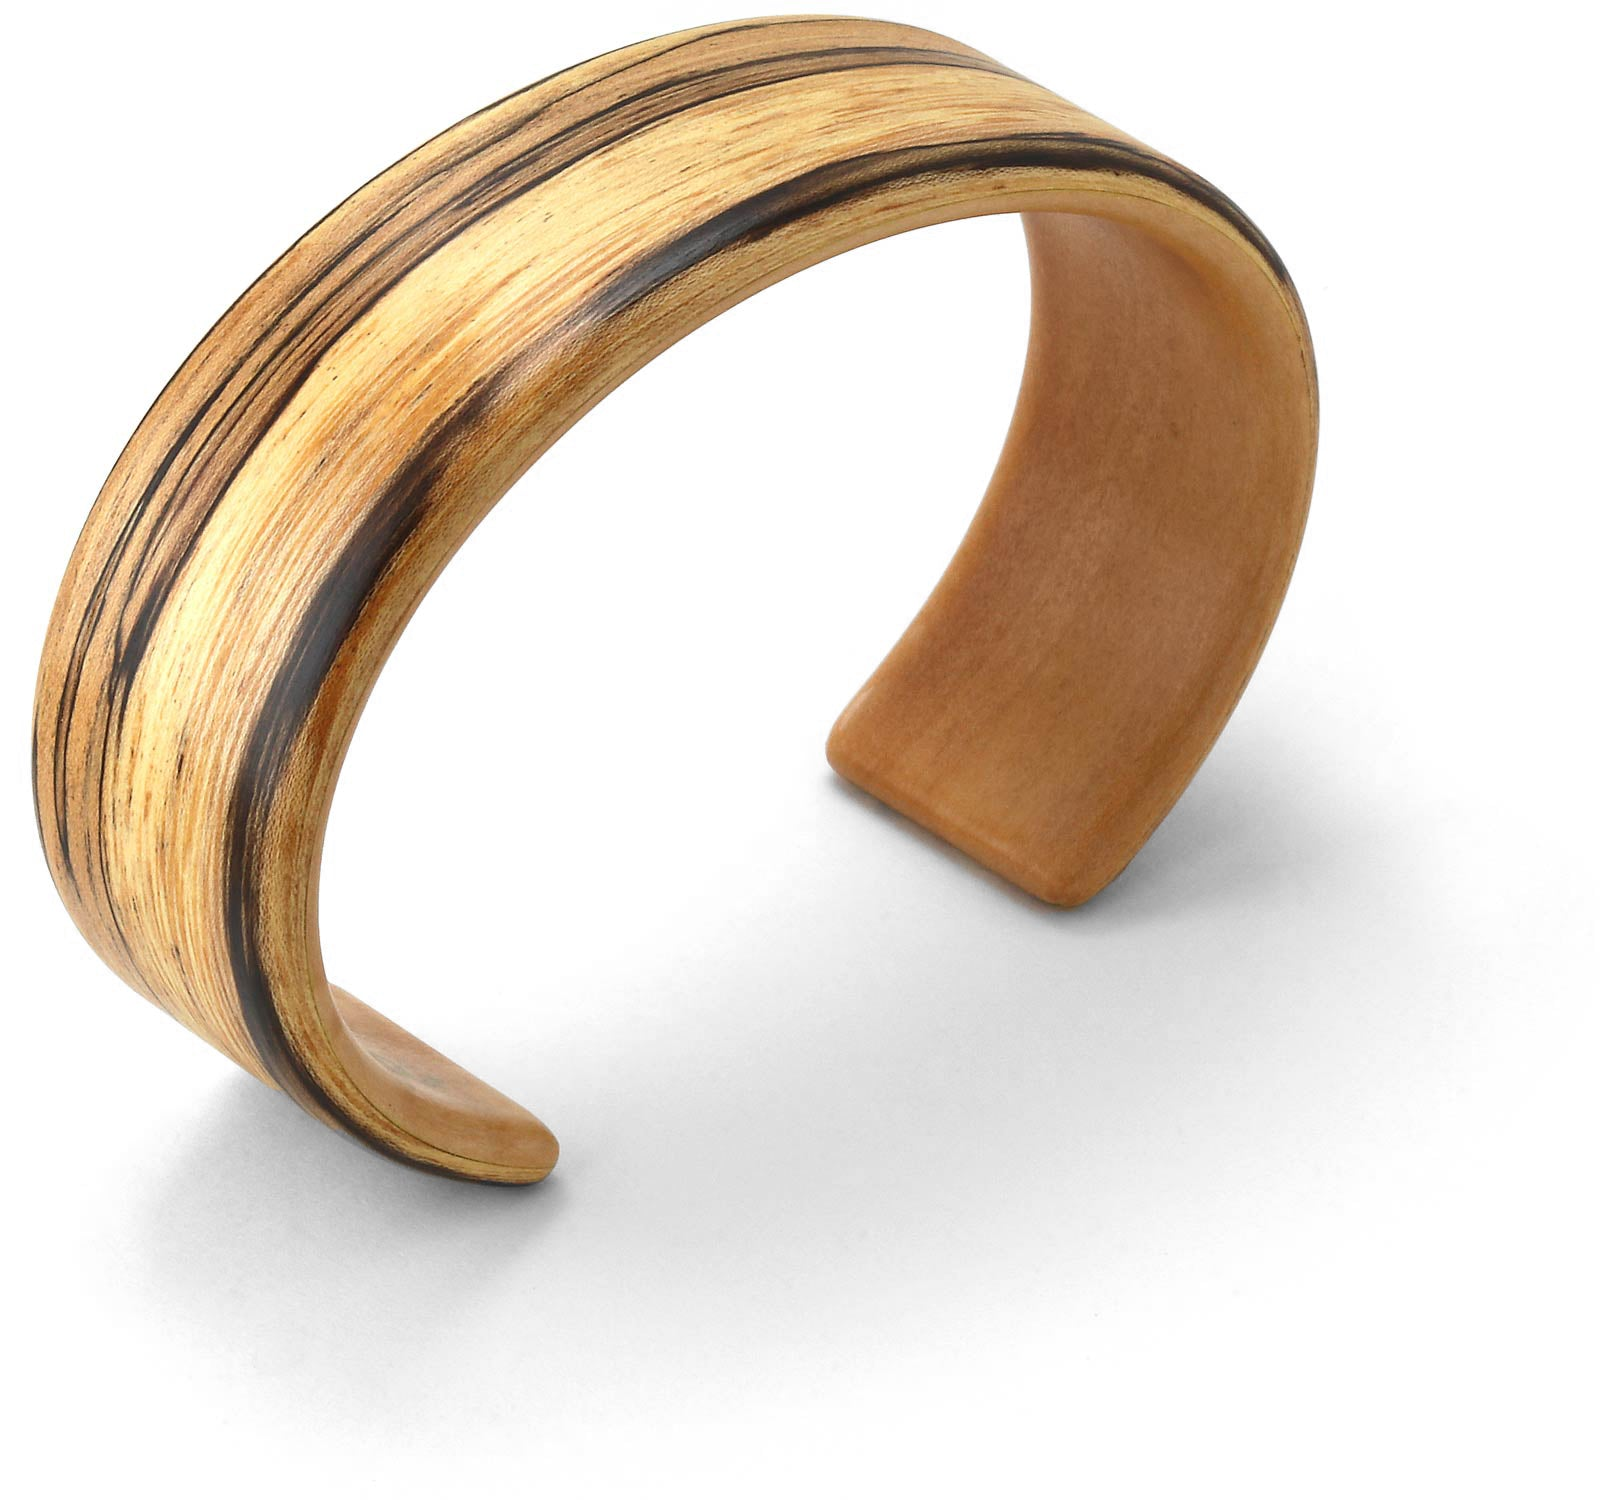 Steam bent spalted wood wide cuff bracelet.